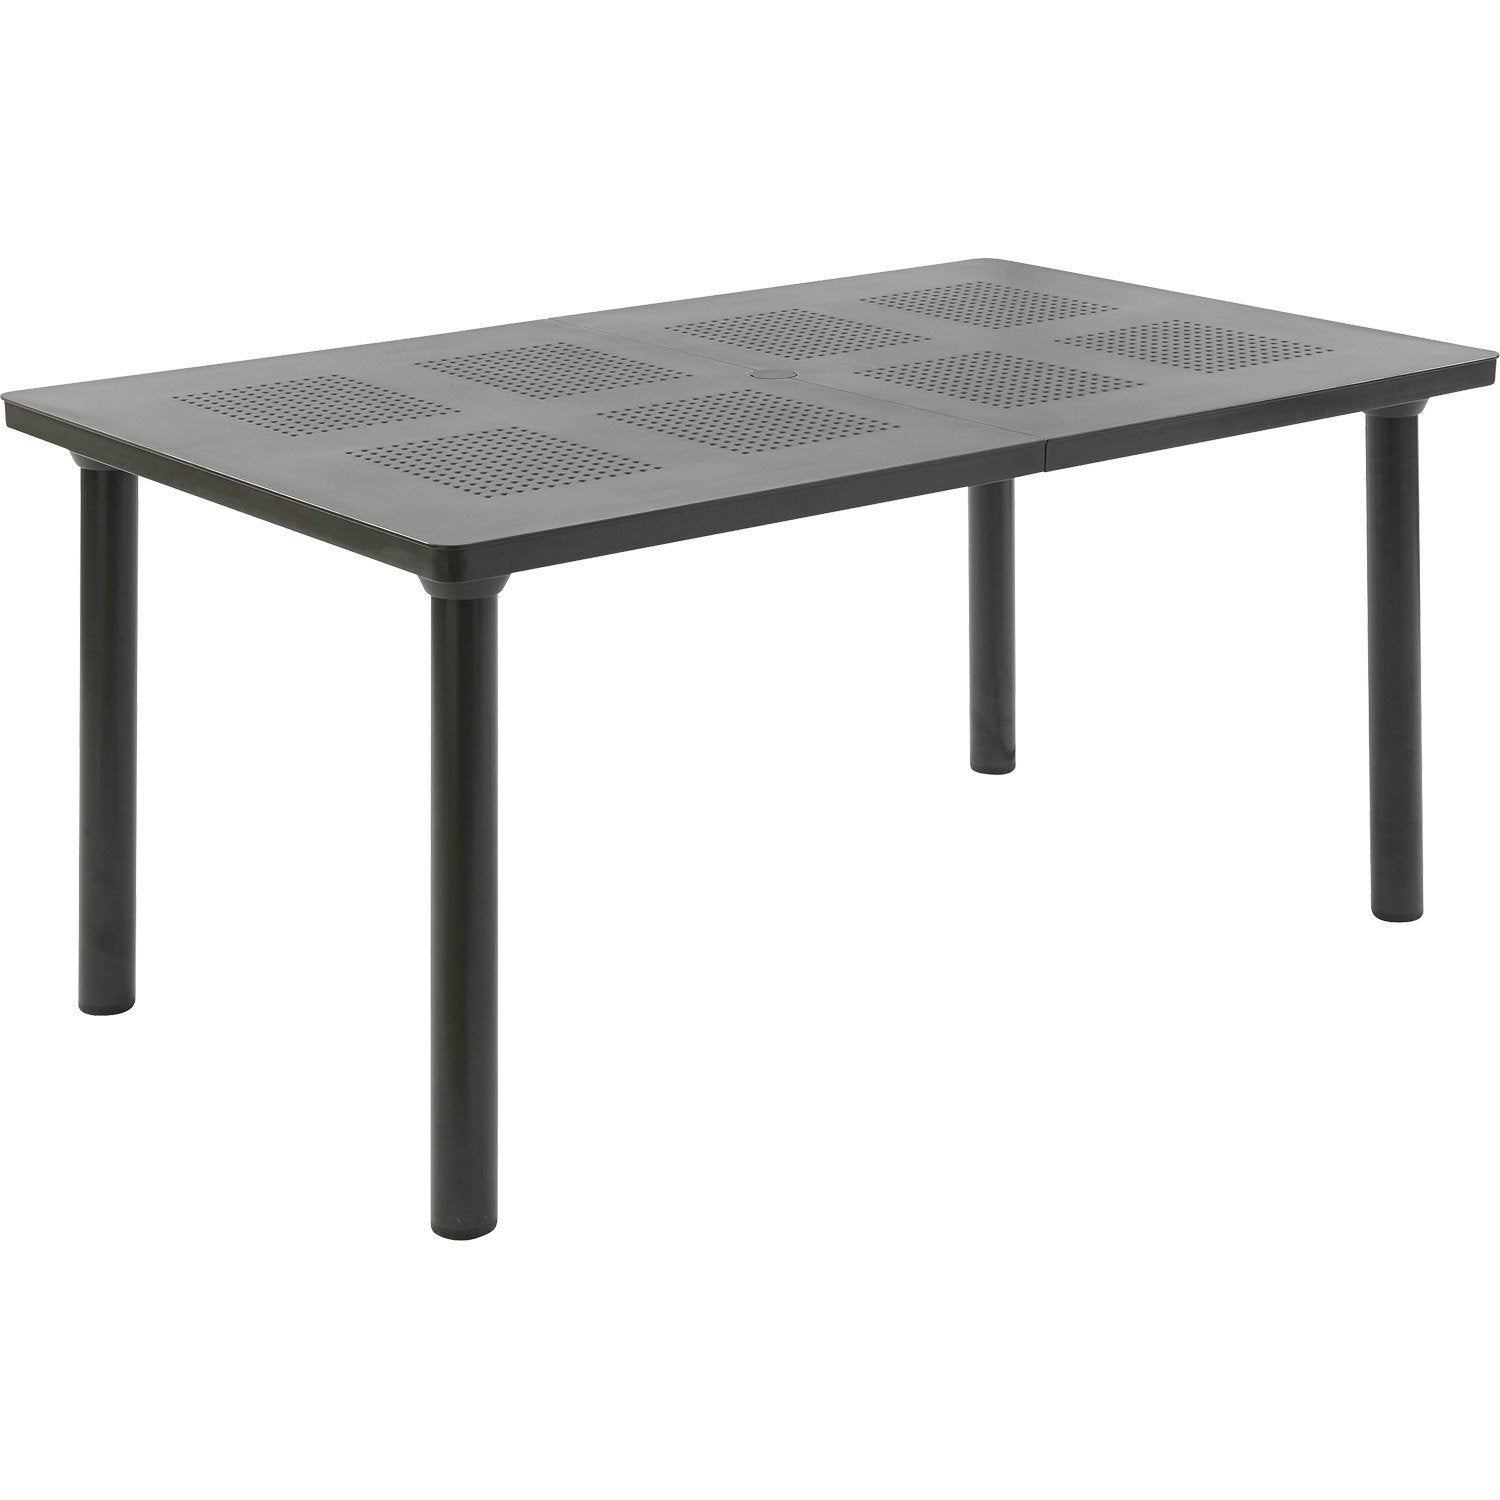 Table de jardin en r sine libeccio gris antracithe nardi for Table de jardin pliante plastique